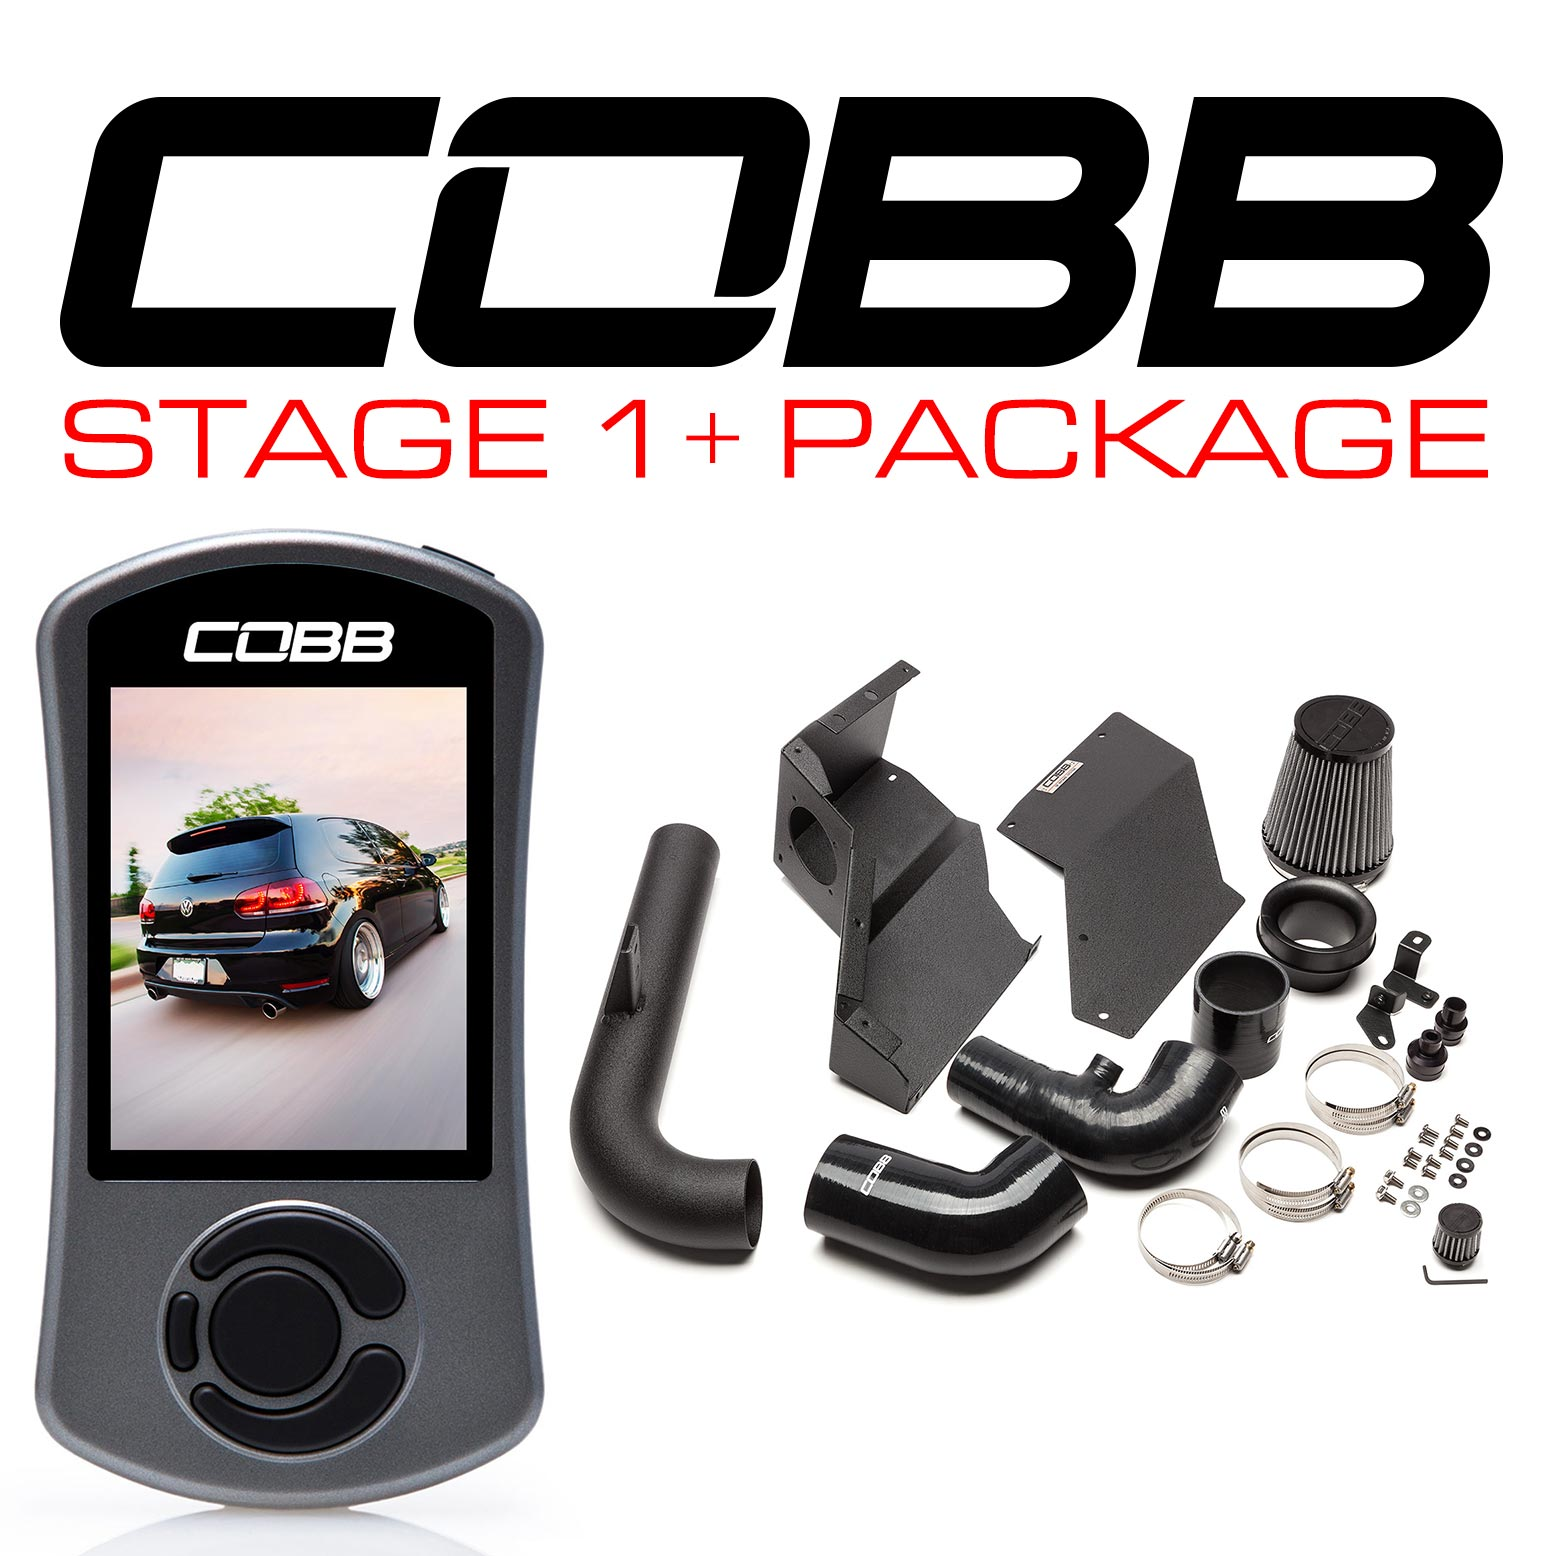 Volkswagen Stage 1 + Power Package GTI (Mk6) 2010-2014 USDM, 2009-2013 WM